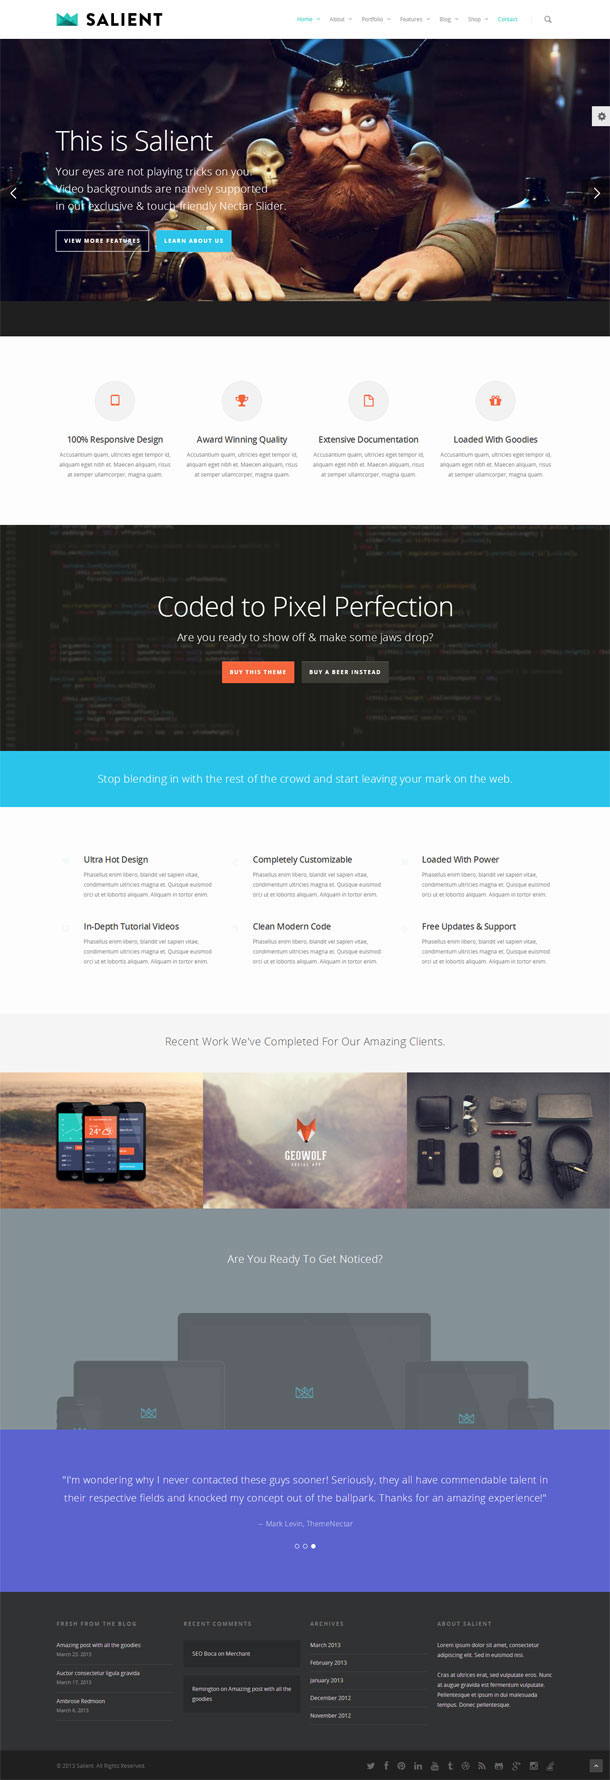 Salient Great WordPress Theme for 2014 image